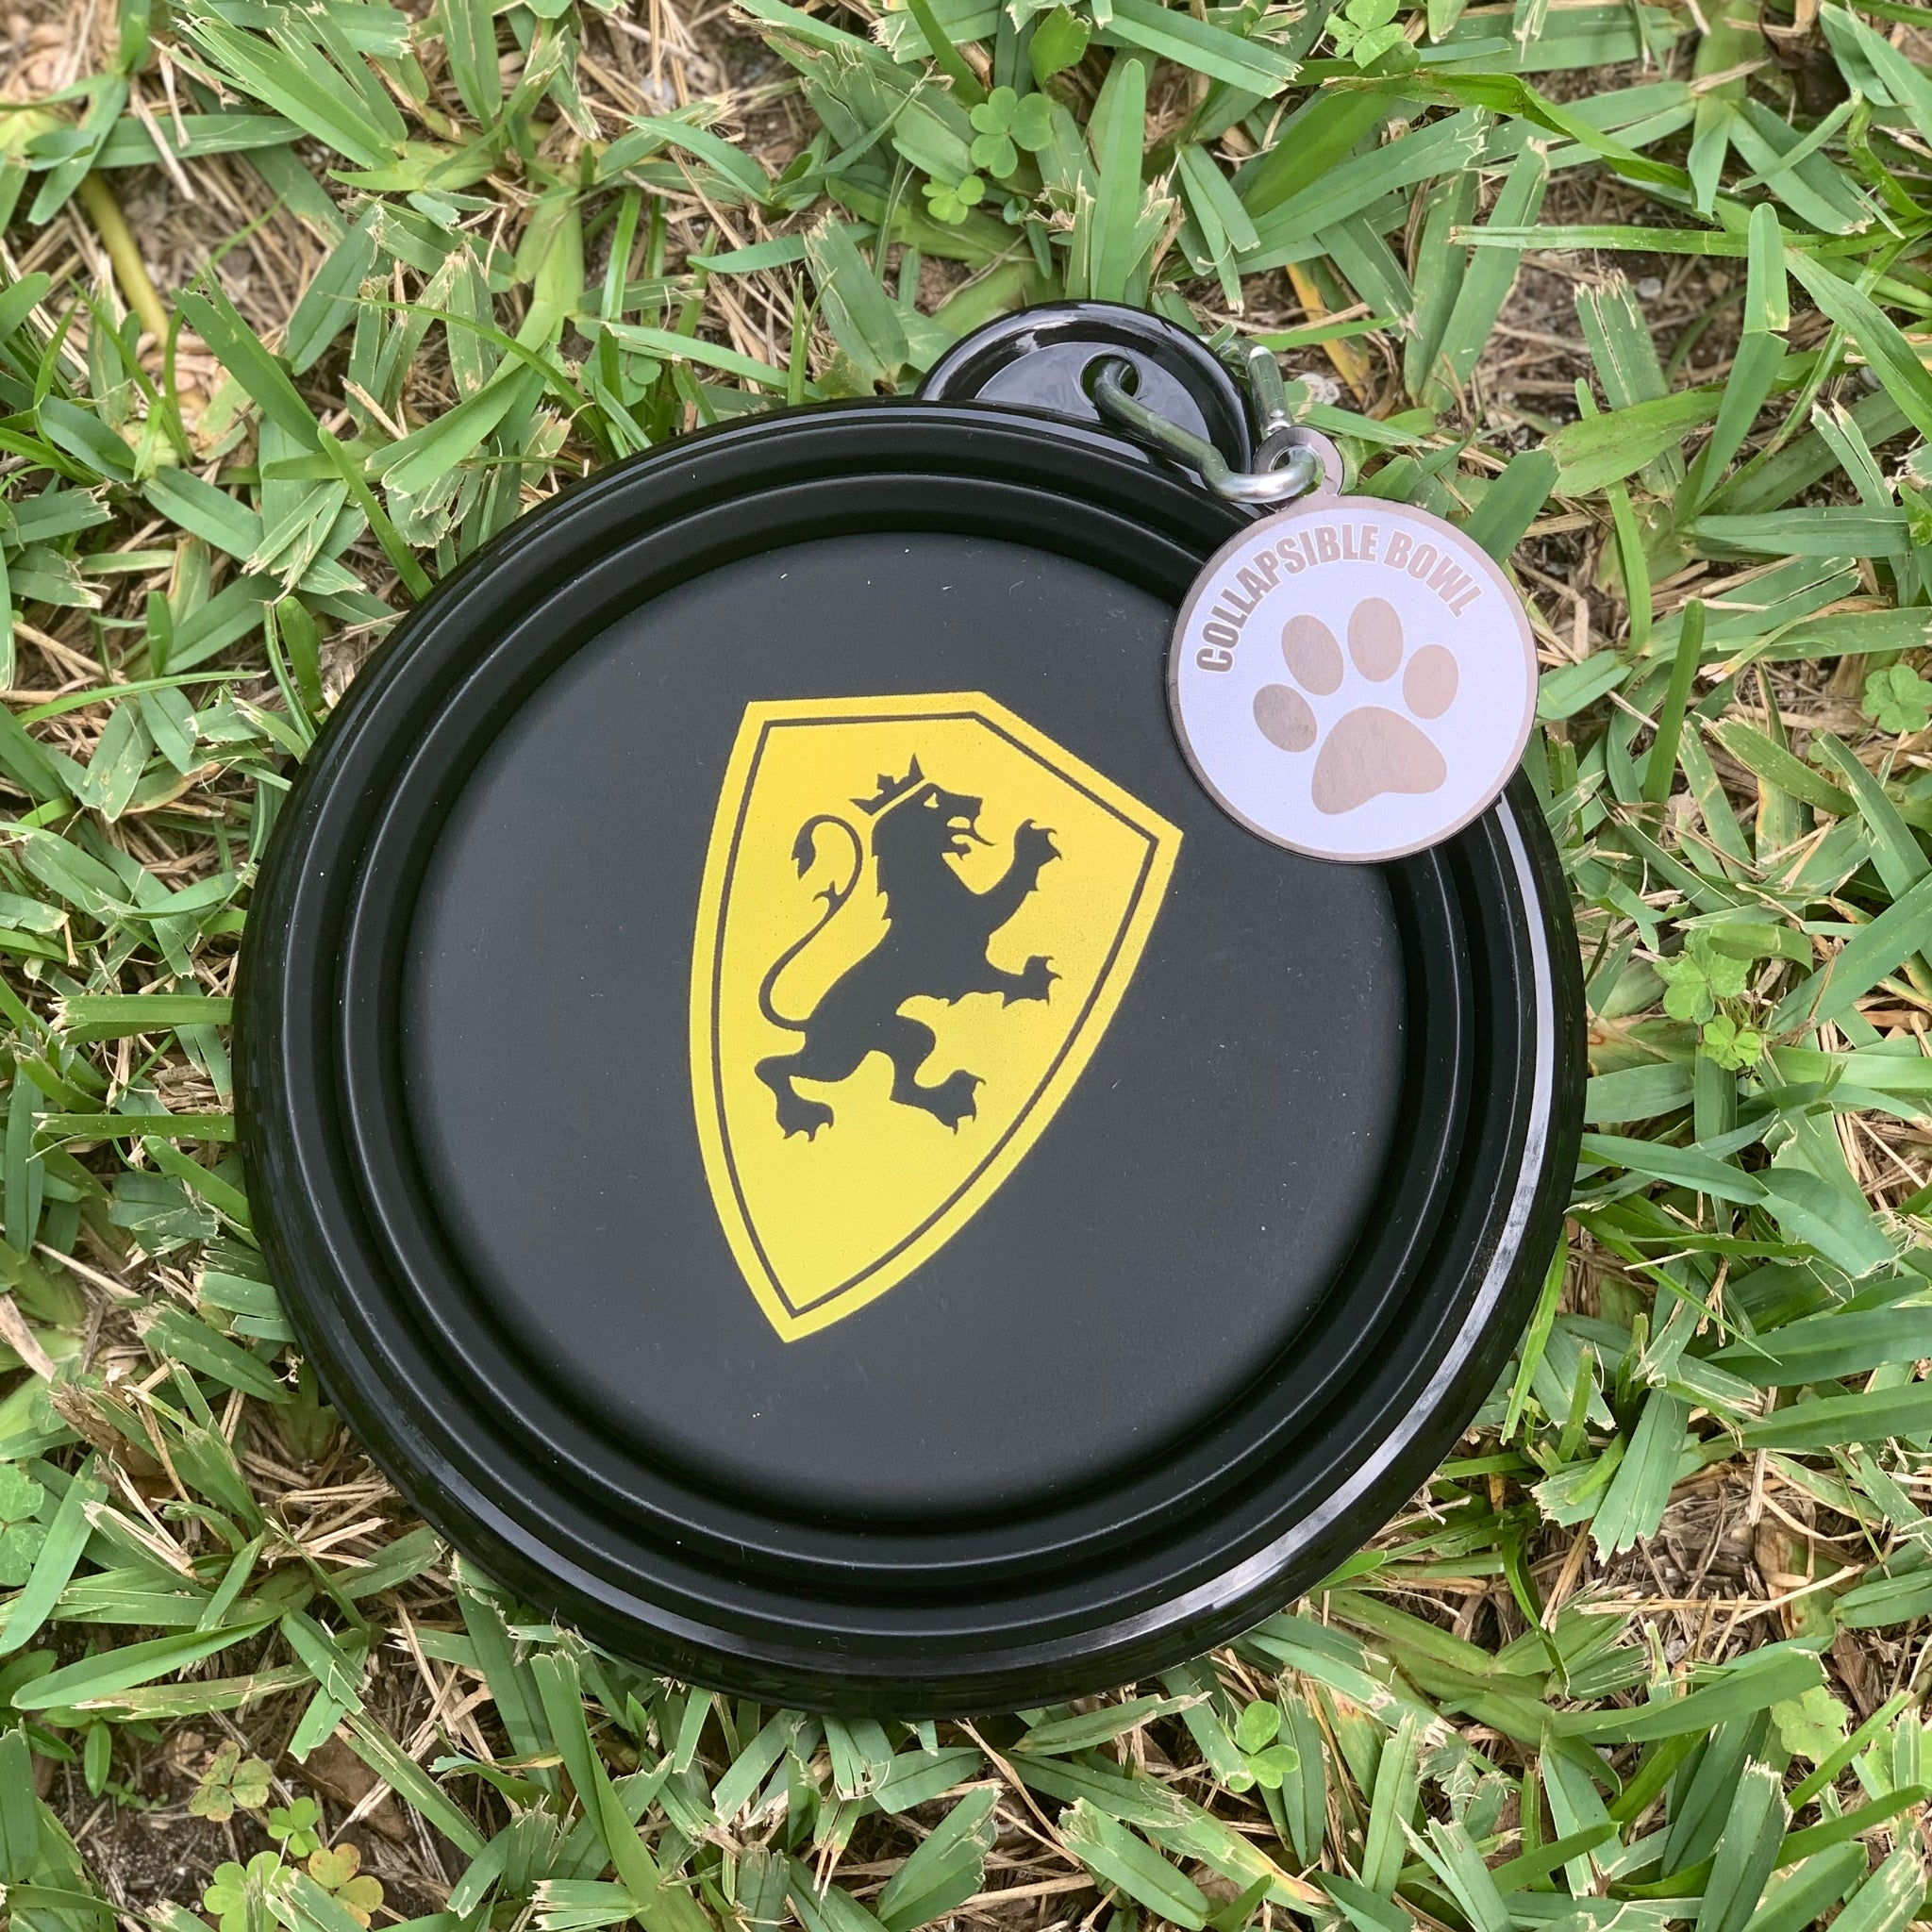 Collapsible water bowl with gold shield